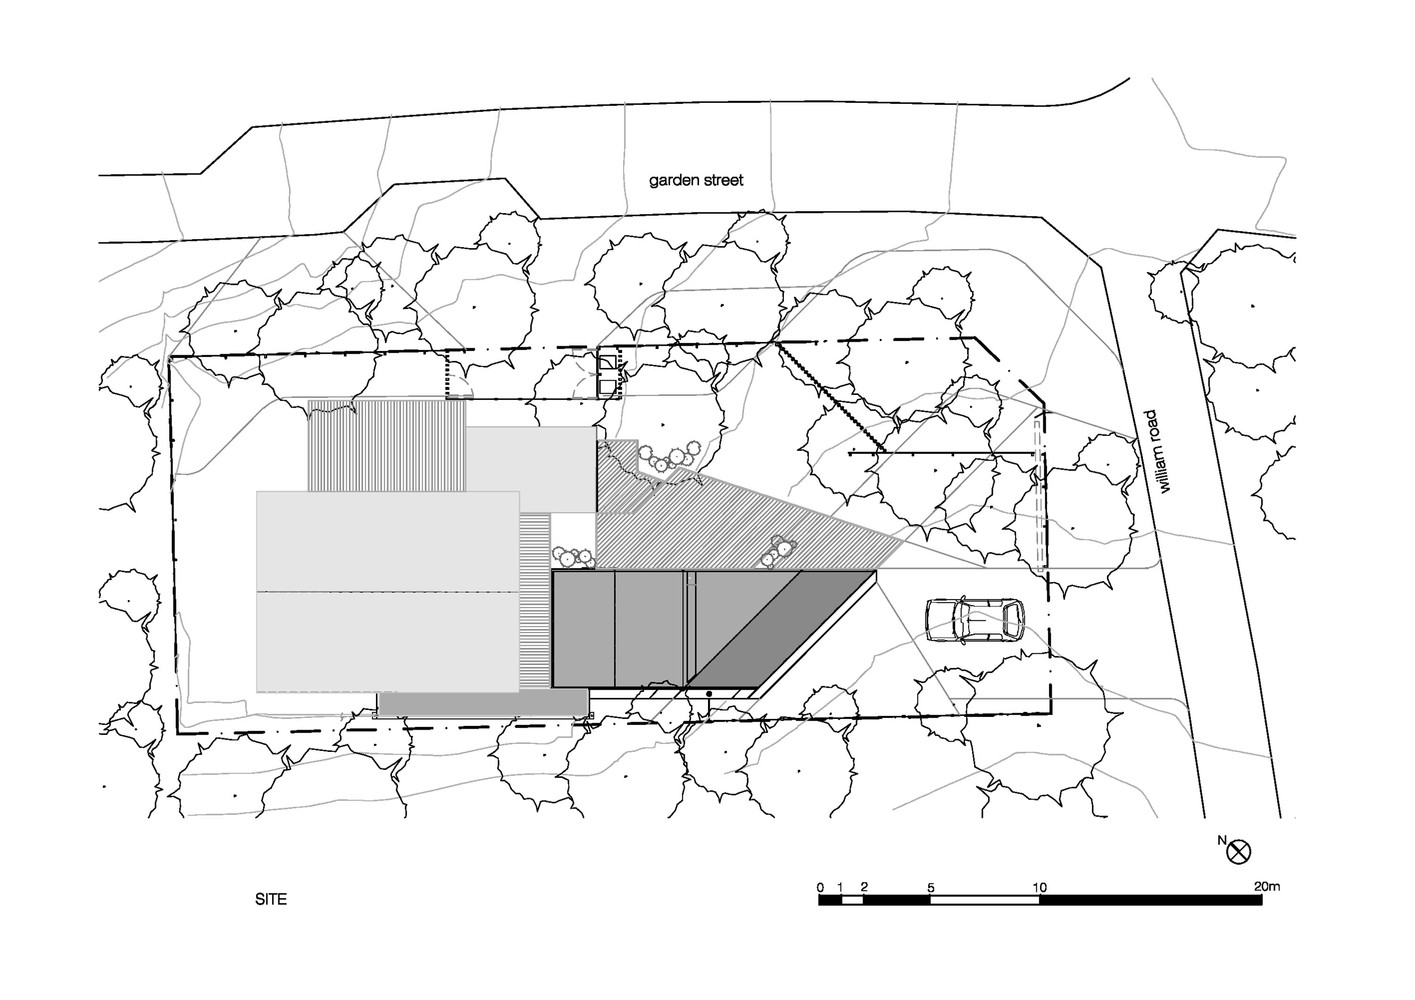 Gallery of cabin 2 maddison architects 15 cabin 2site plan pooptronica Image collections